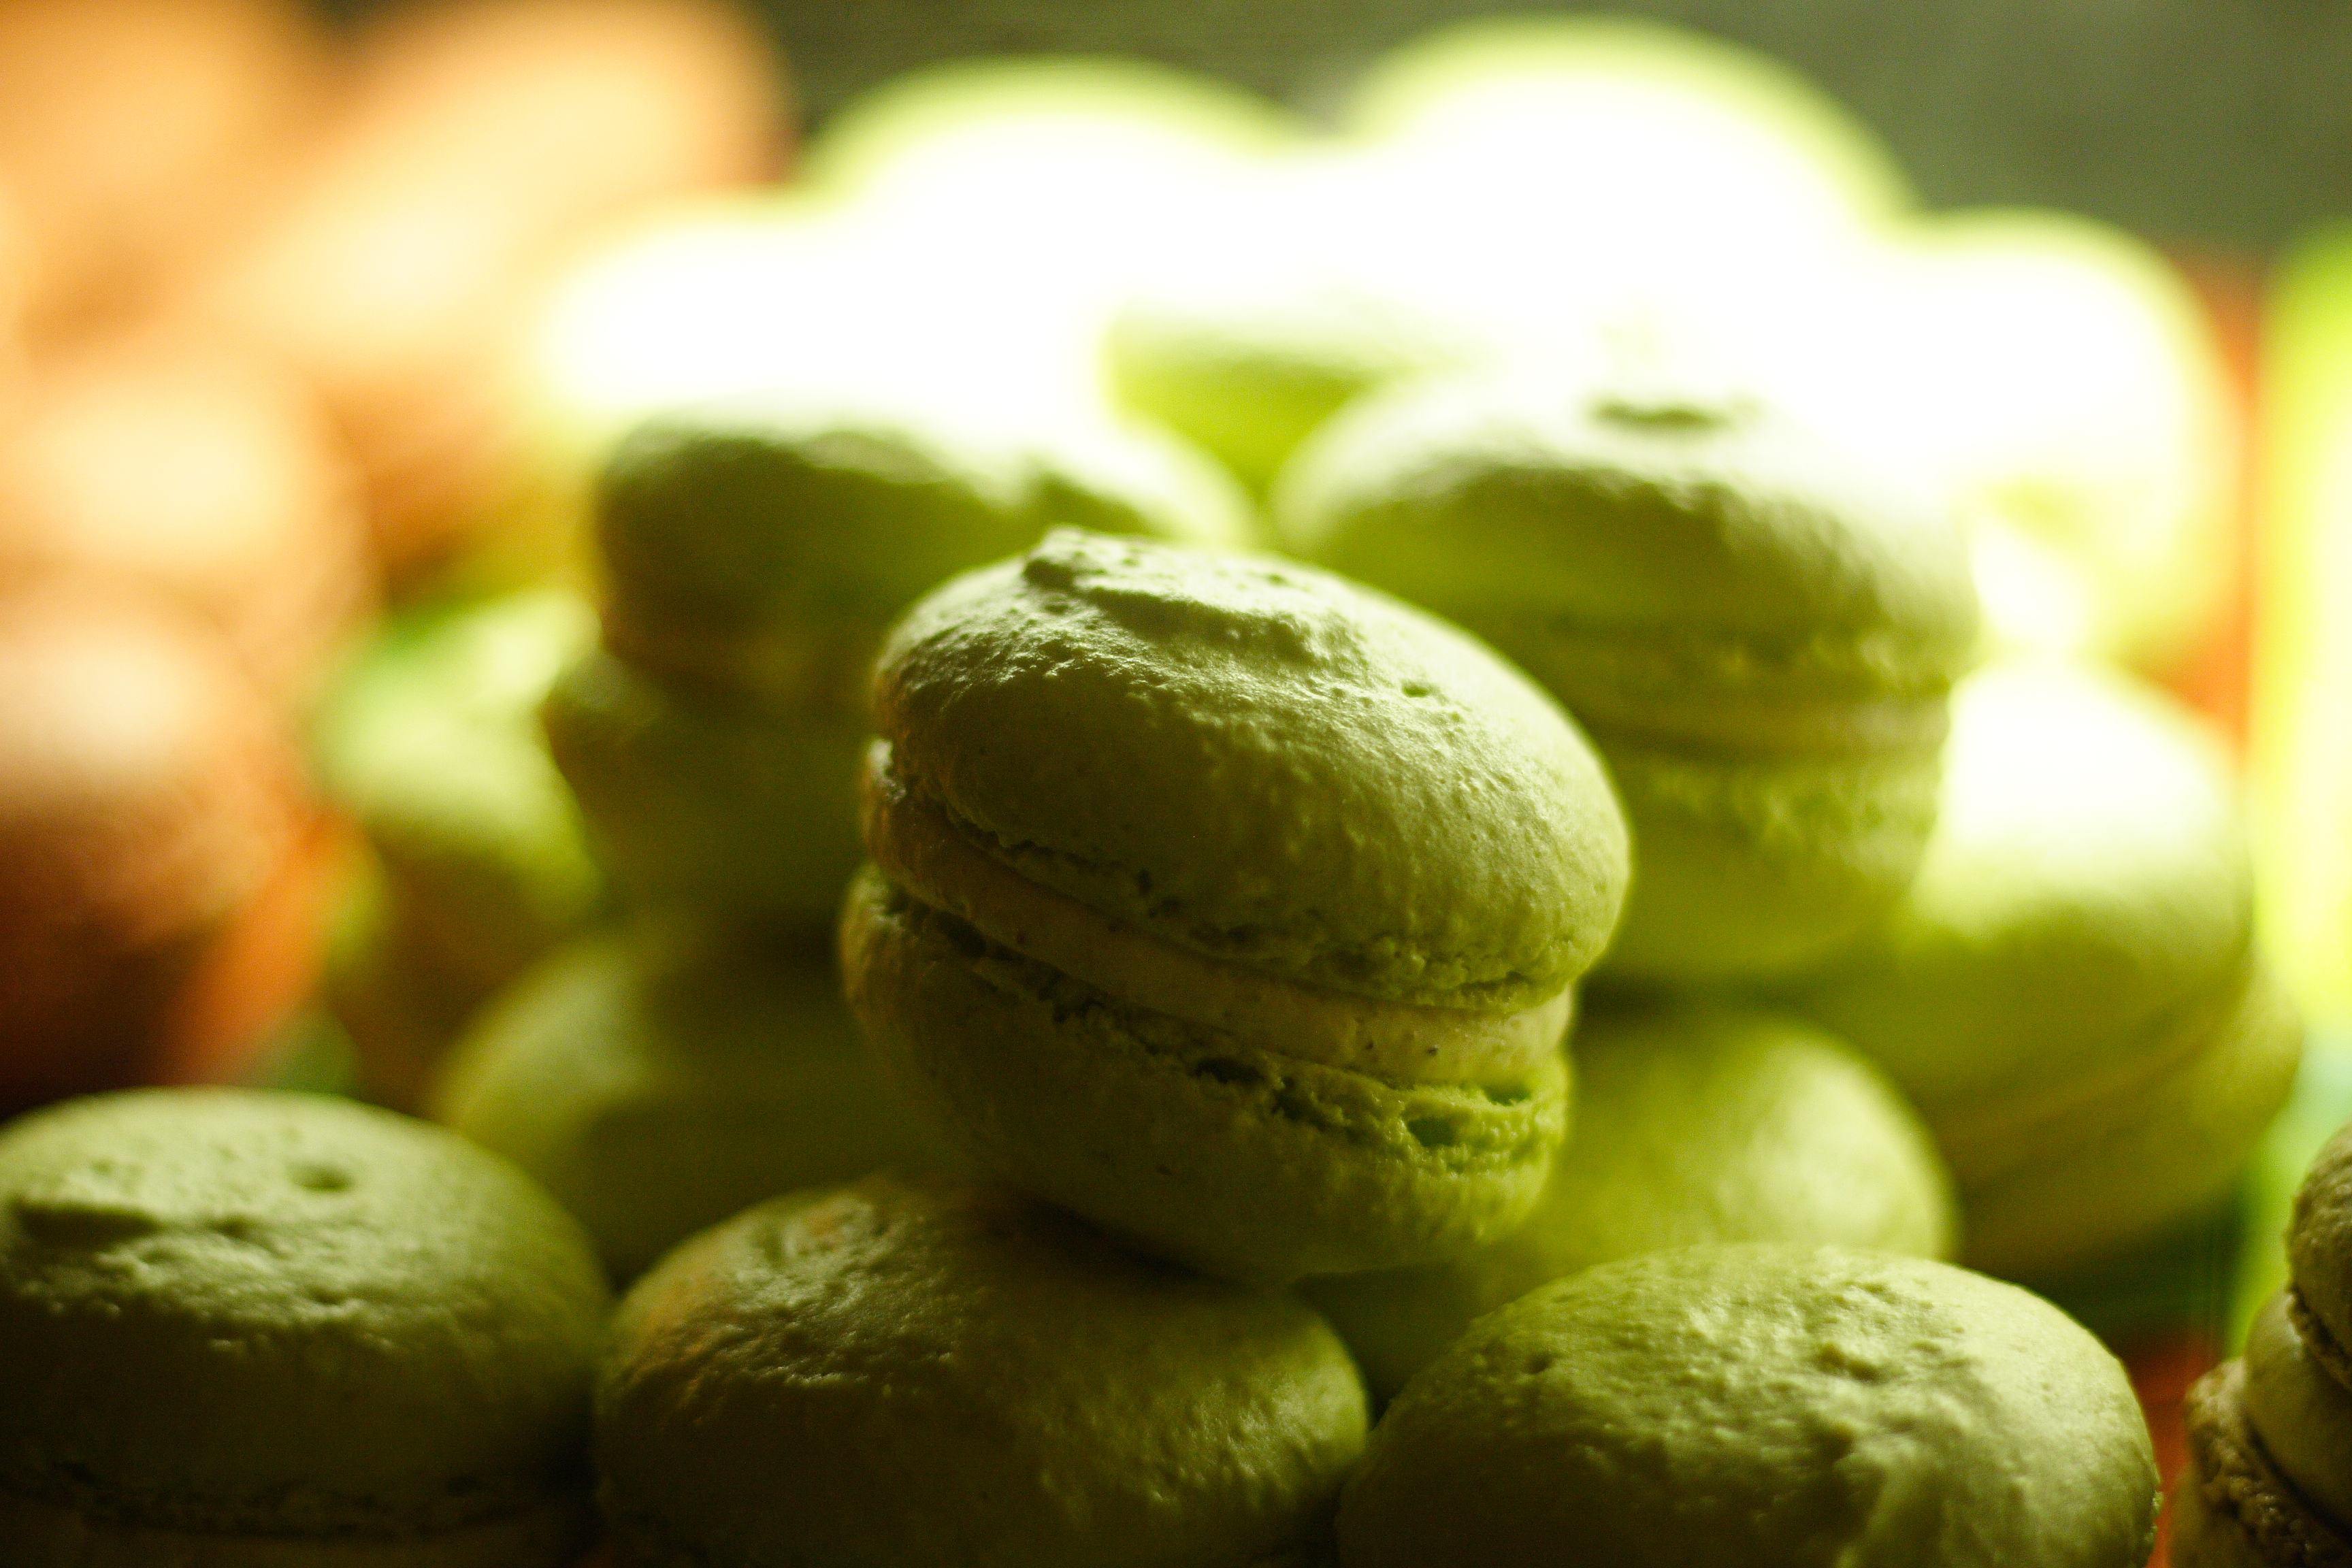 File:Pistachio macarons, November 2007.jpg - Wikimedia Commons